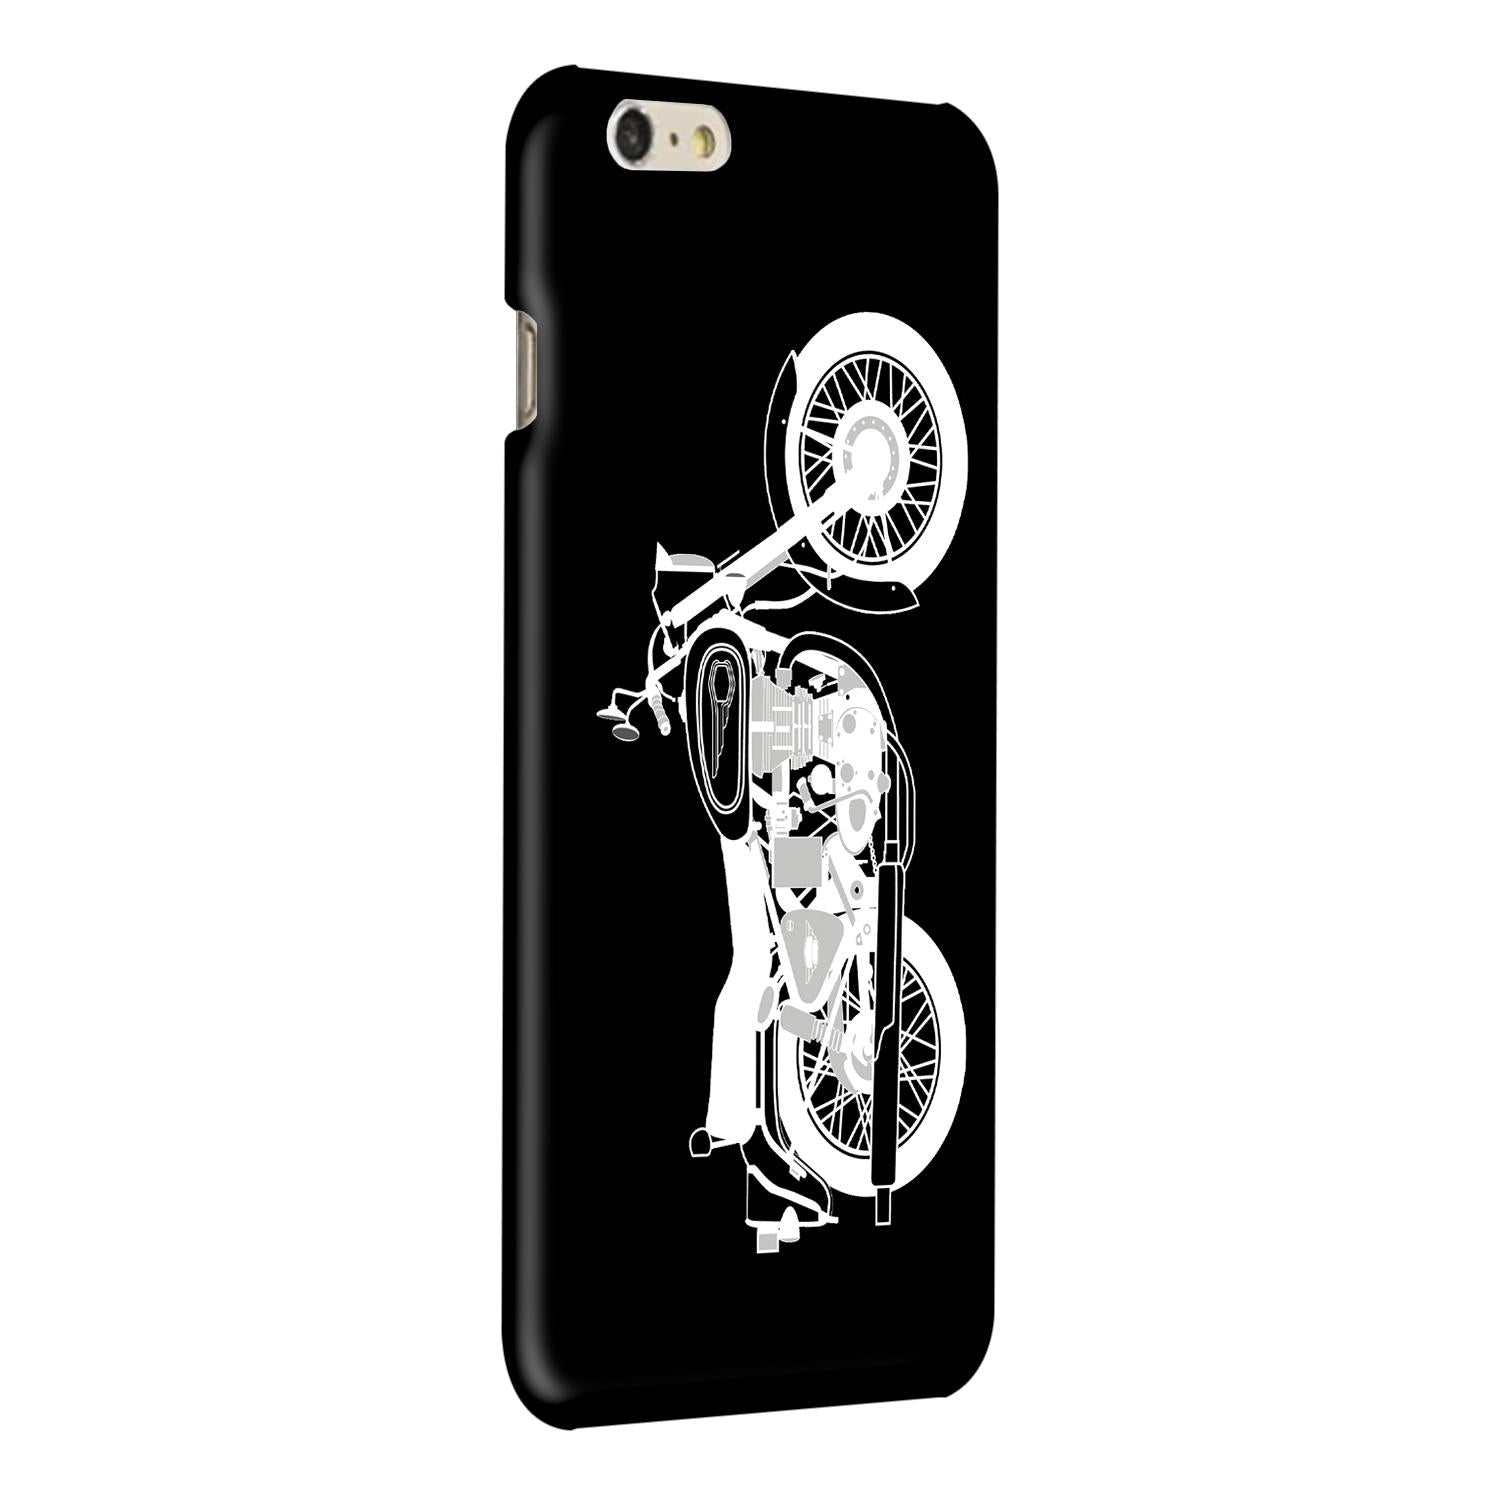 Bulllet Love iPhone 6 Plus Mobile Cover Case